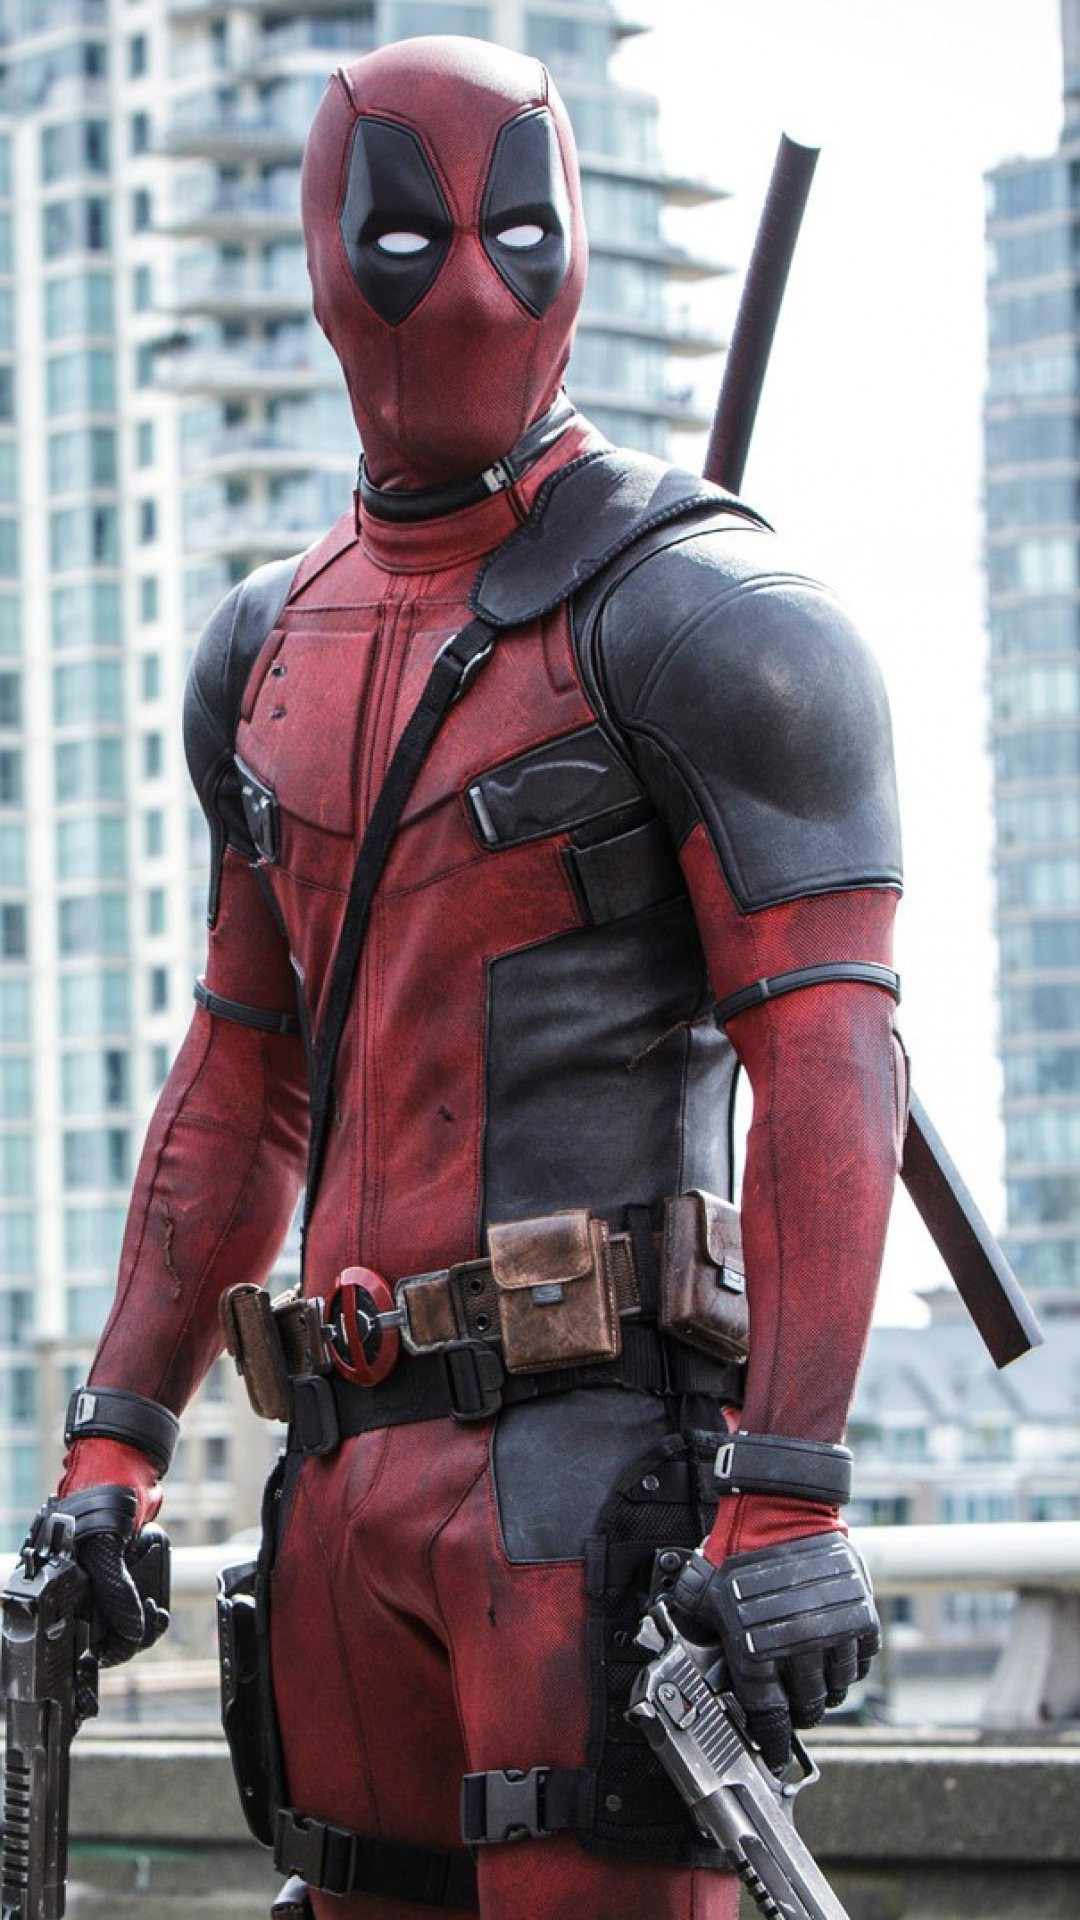 Stranger In The House Deadpool Hd Wallpapers For Iphone 6 Plus Wallpapers Pictures